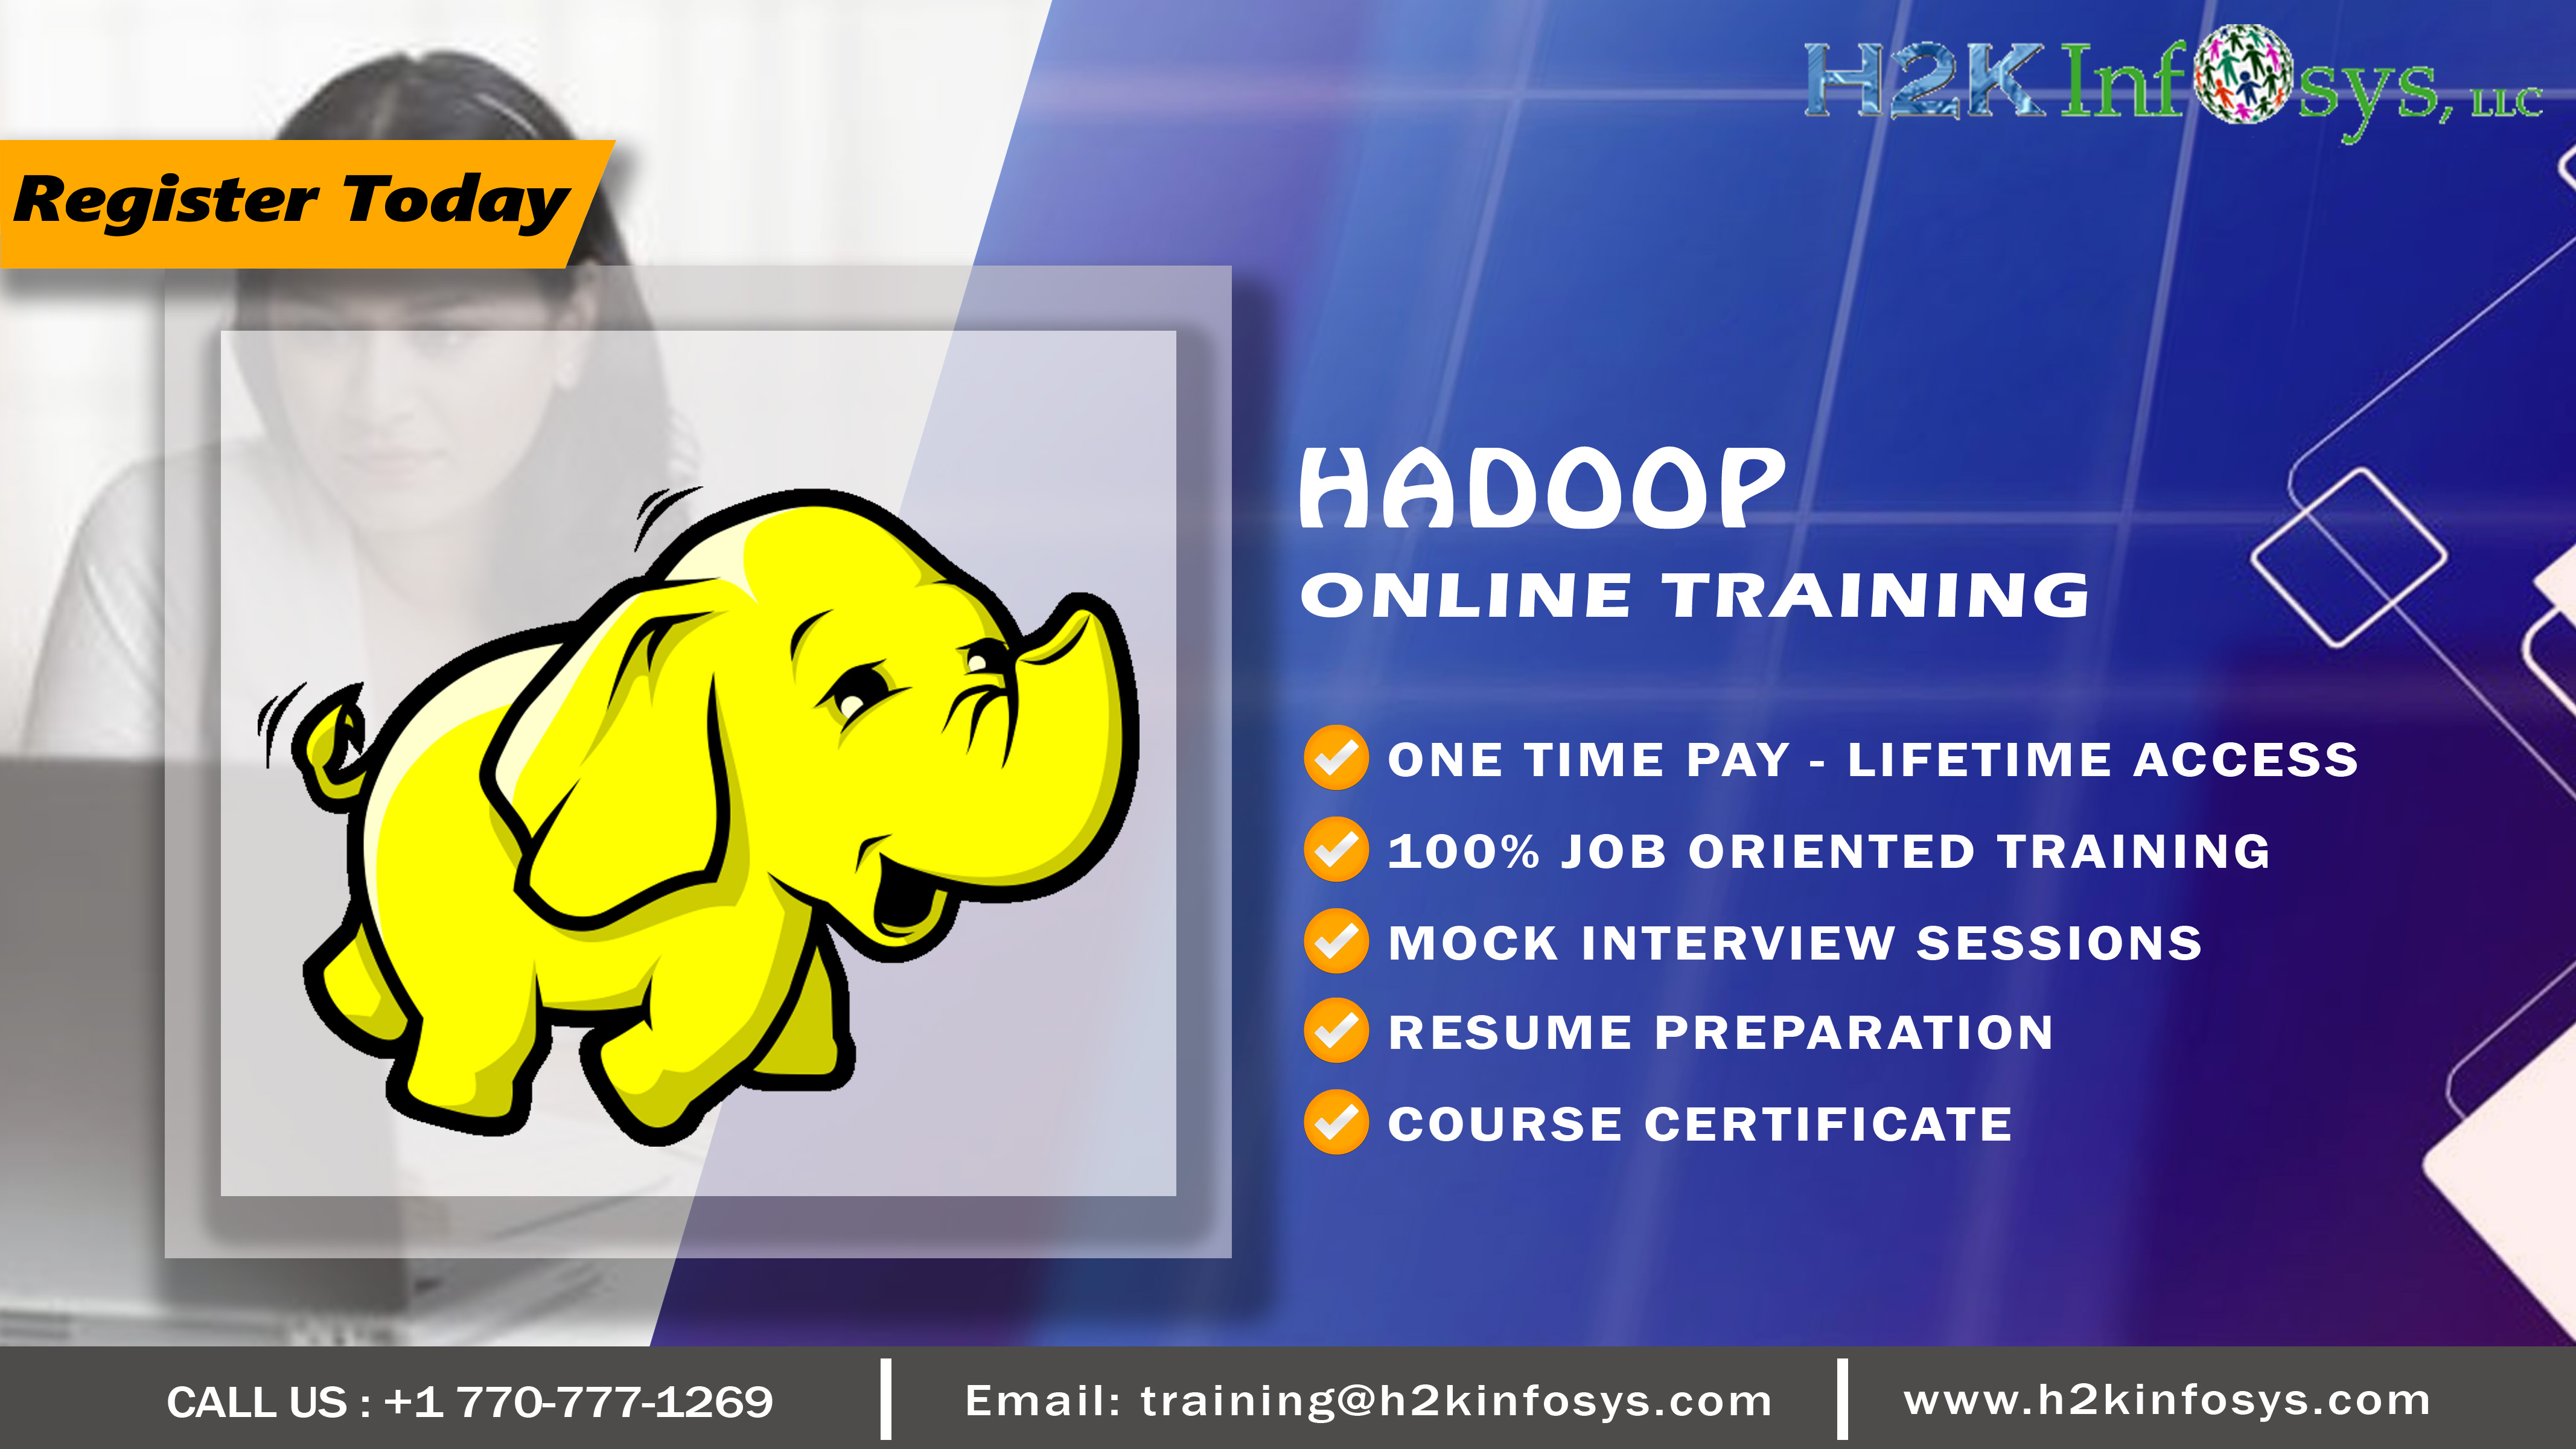 Hadoop Online Course with Placements Assistance